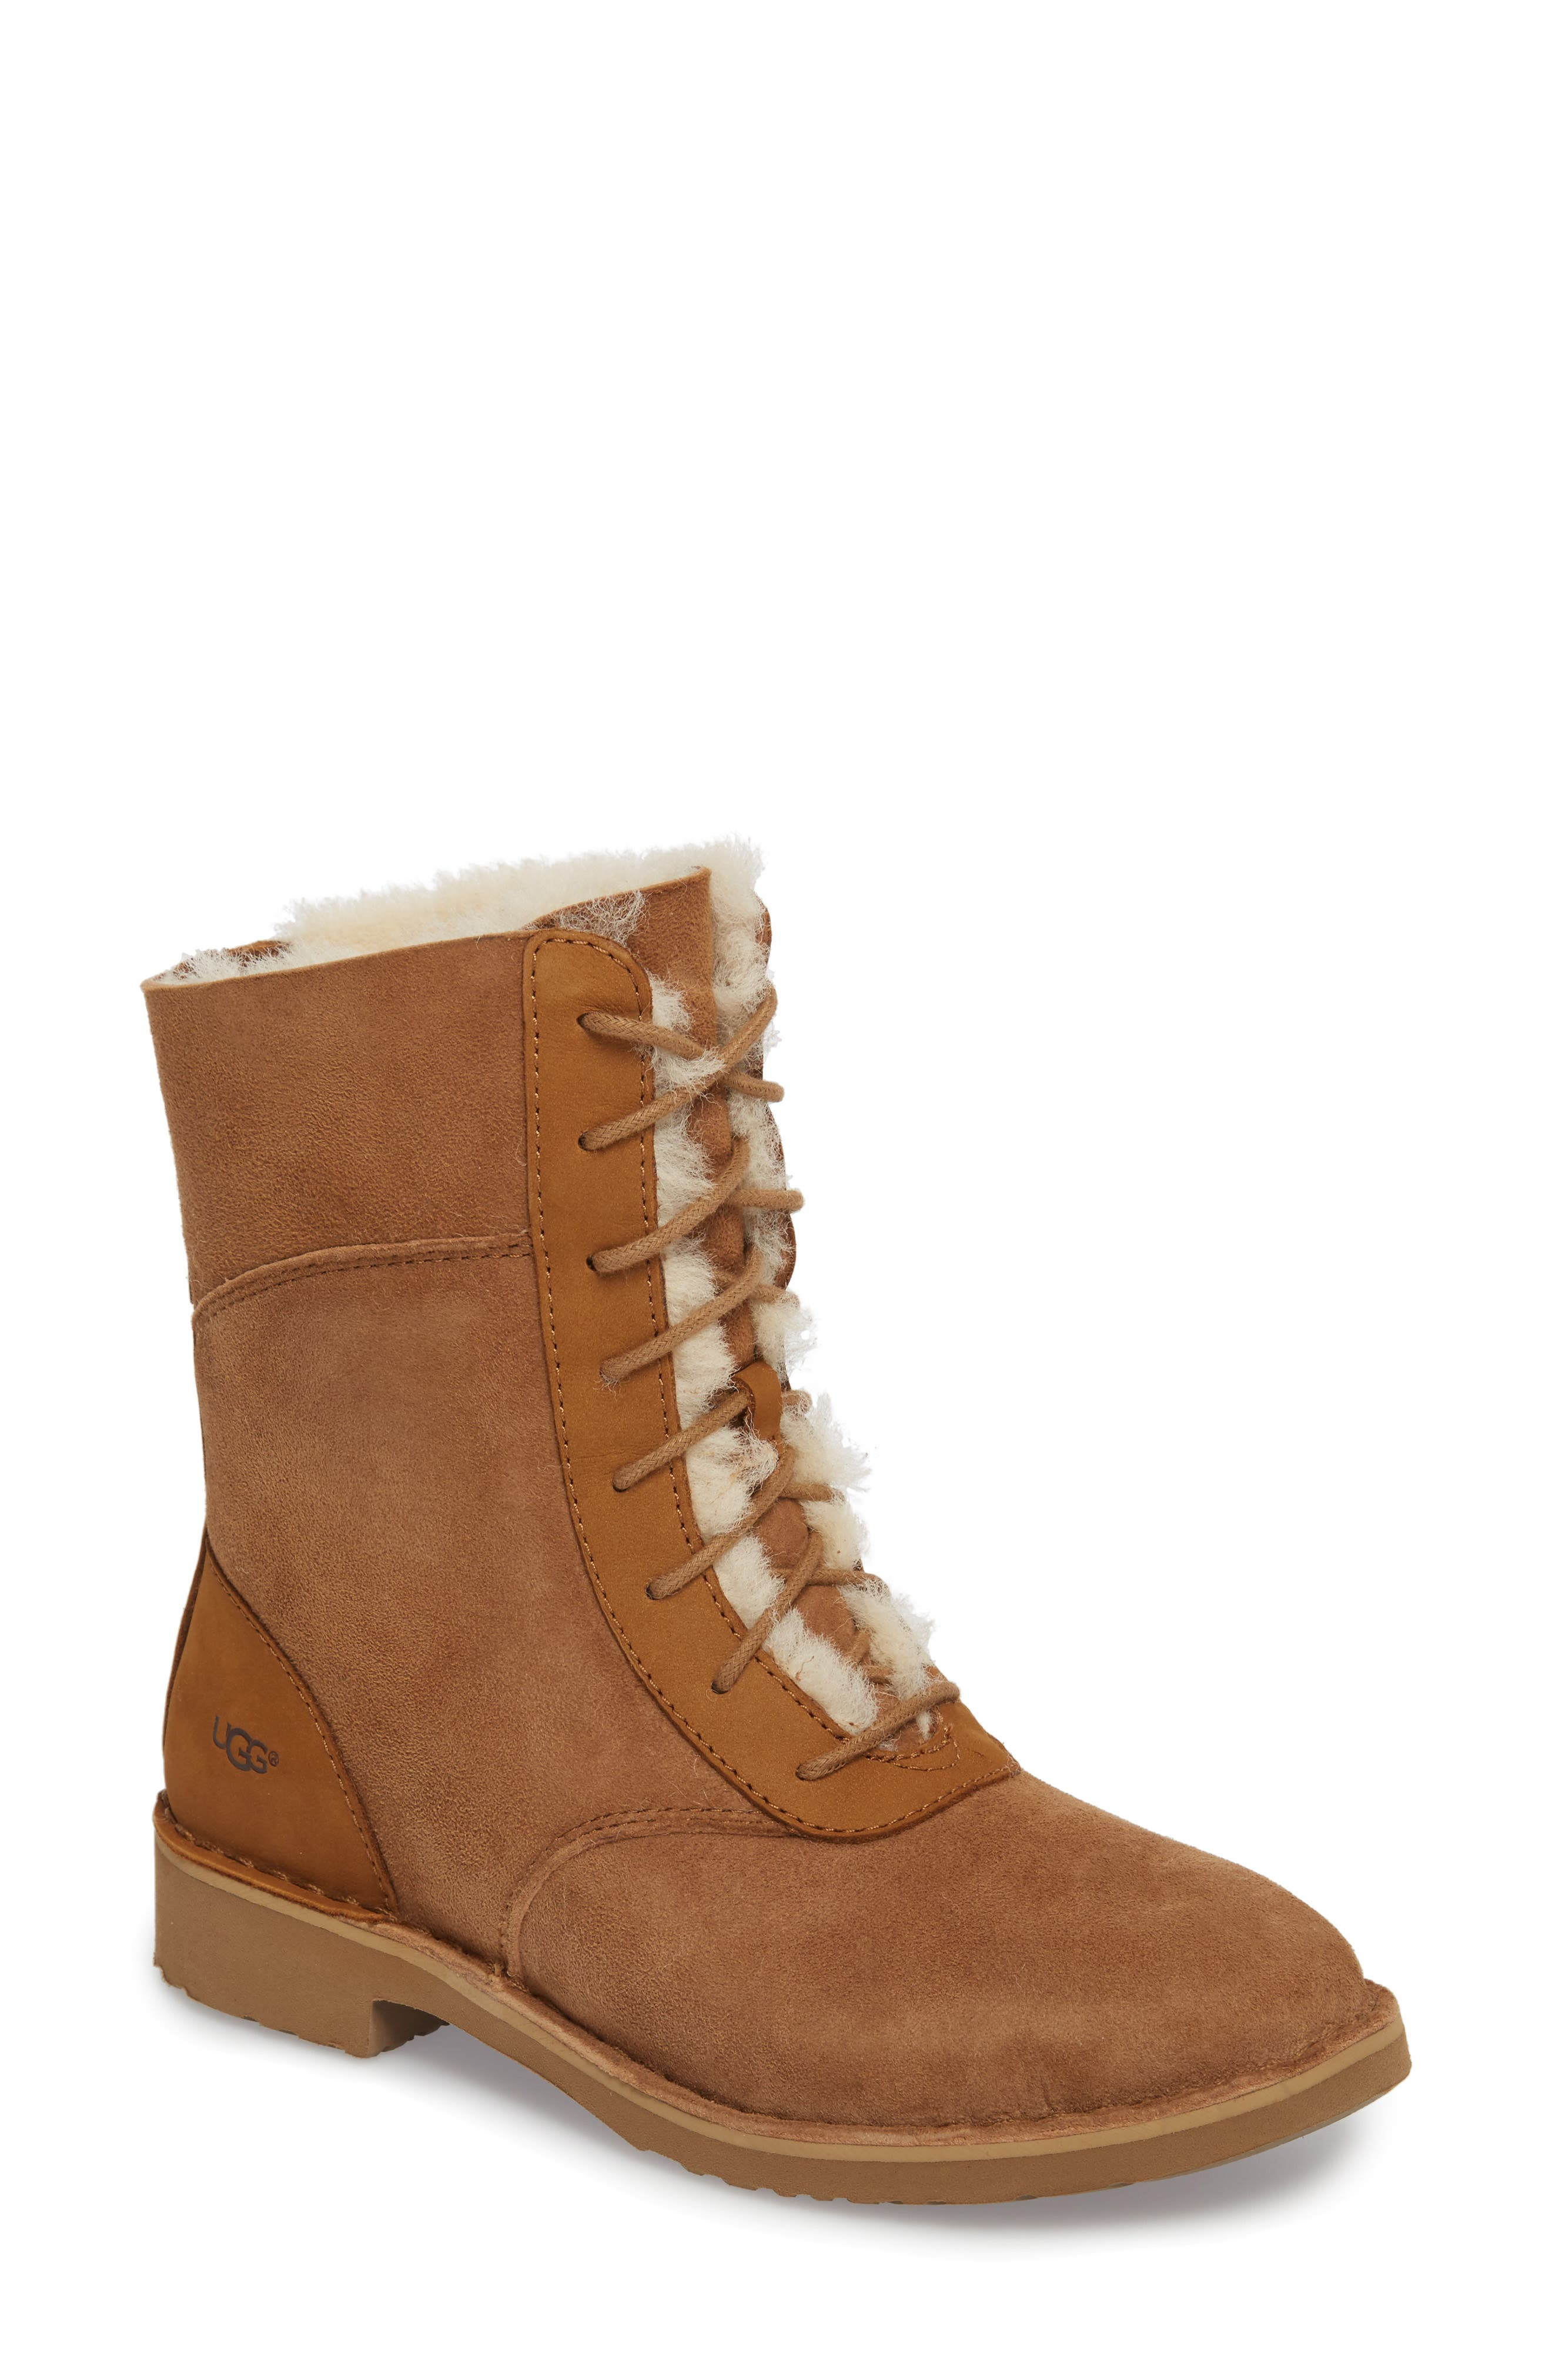 Daney Lace-Up Boot,                             Main thumbnail 1, color,                             Chestnut Suede